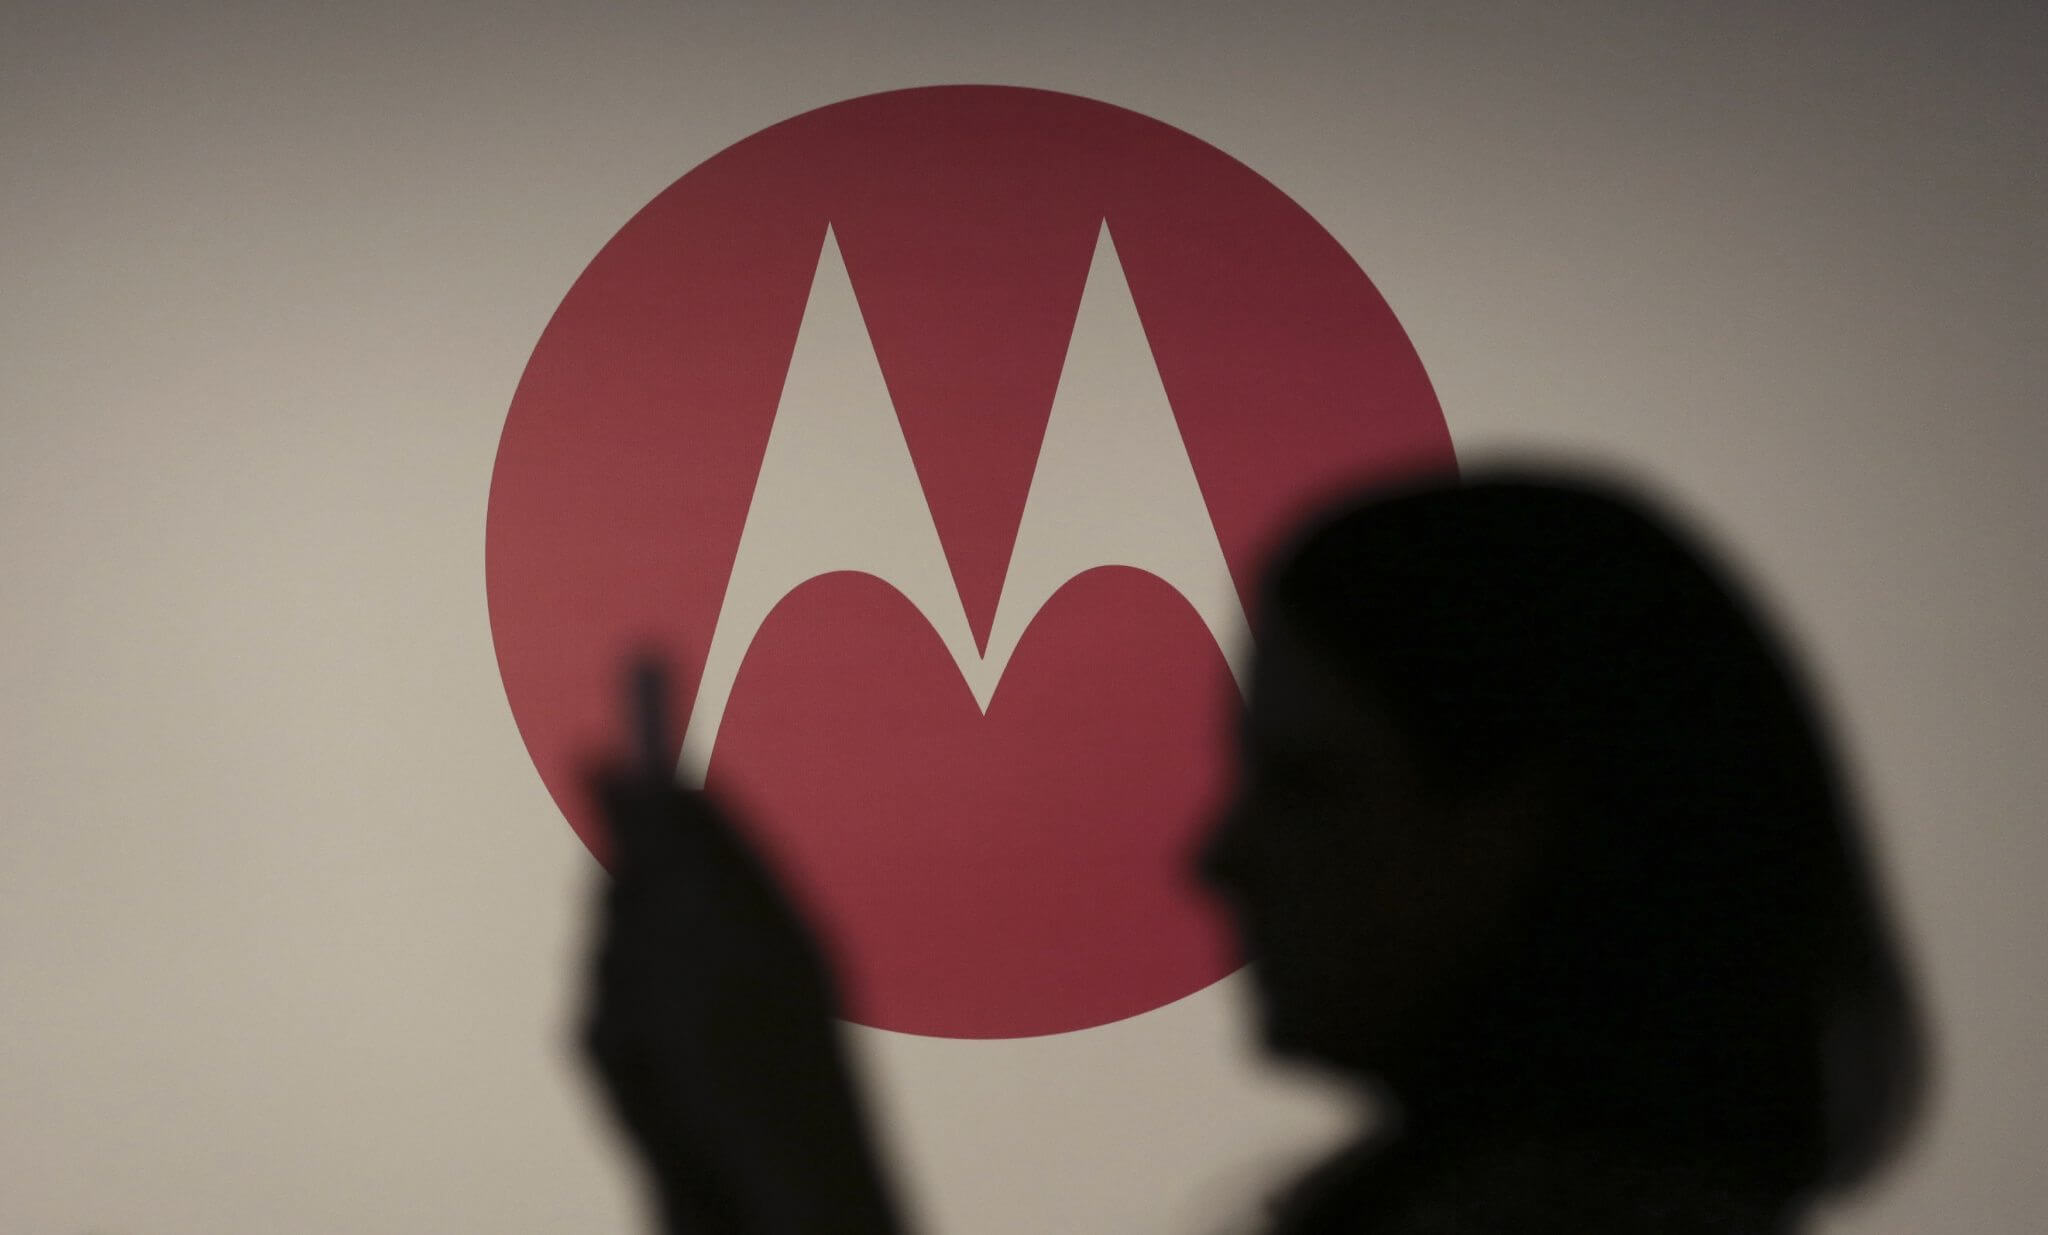 A woman takes a picture in front of a Motorola logo before the worldwide presentation of the Moto G mobile phone in Sao Paulo November 13, 2013. The new Motorola phone, which is being aimed at consumers in developing markets like Brazil and India as well as budget-buyers in Western countries, is the second major new product that Motorola has developed since its acquisition by Internet company Google in 2012. REUTERS/Nacho Doce (BRAZIL - Tags: BUSINESS LOGO TELECOMS) - RTX15BYF